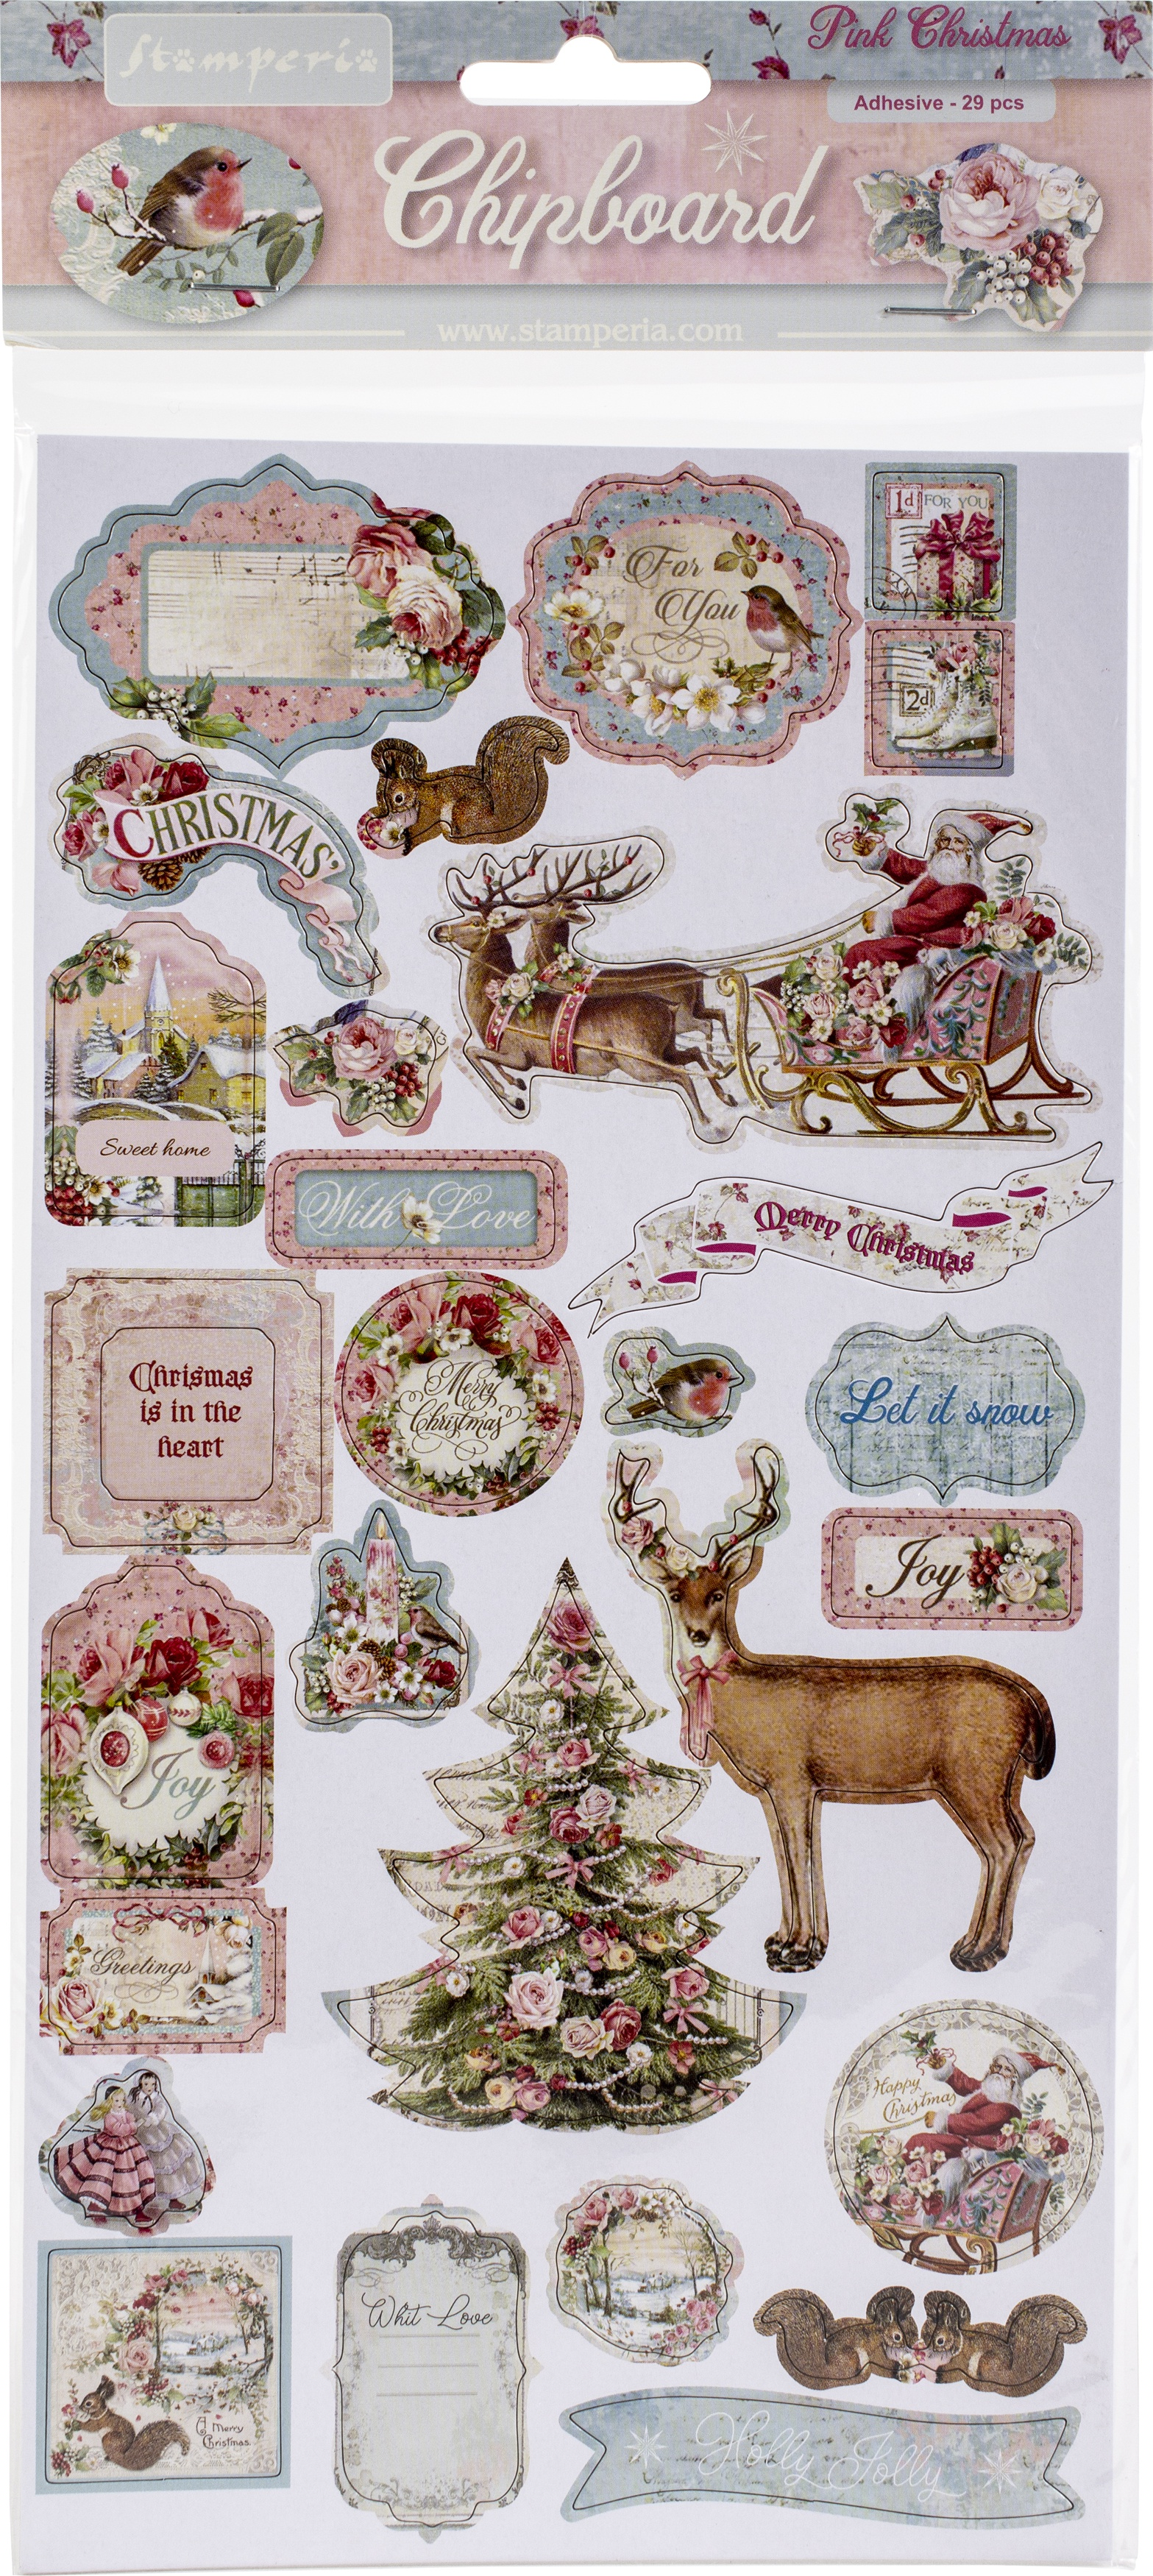 Stamperia Adhesive Chipboard 6X12-Pink Christmas